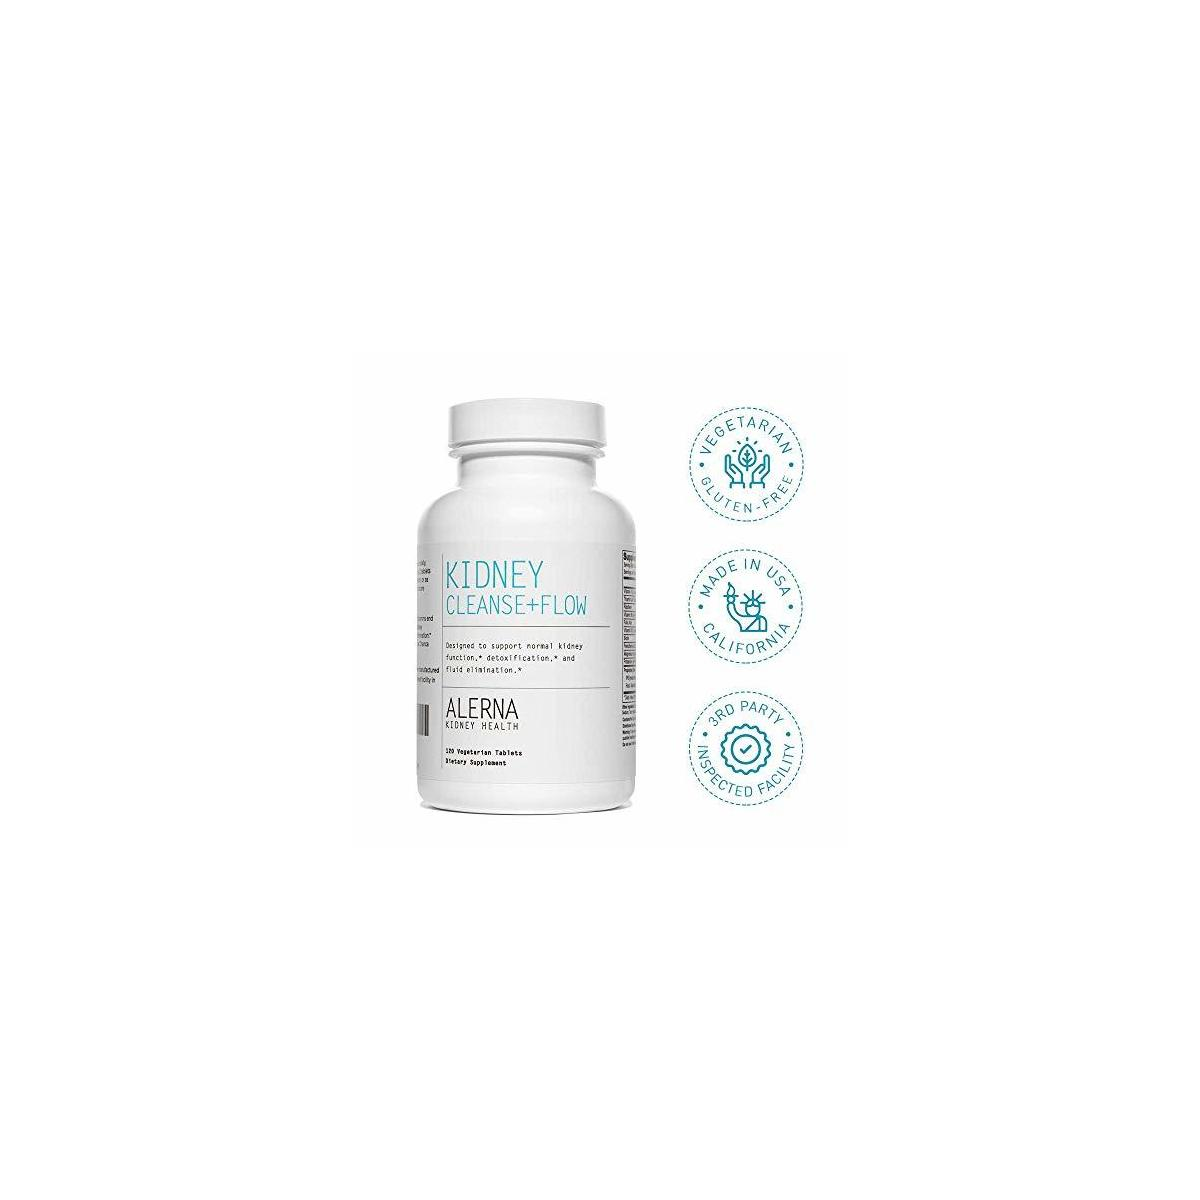 Stone Cleanse & Flow -- Supports Normal Kidney Function with Chanca Piedra aka Stone Breaker, IP6, Gravel Root